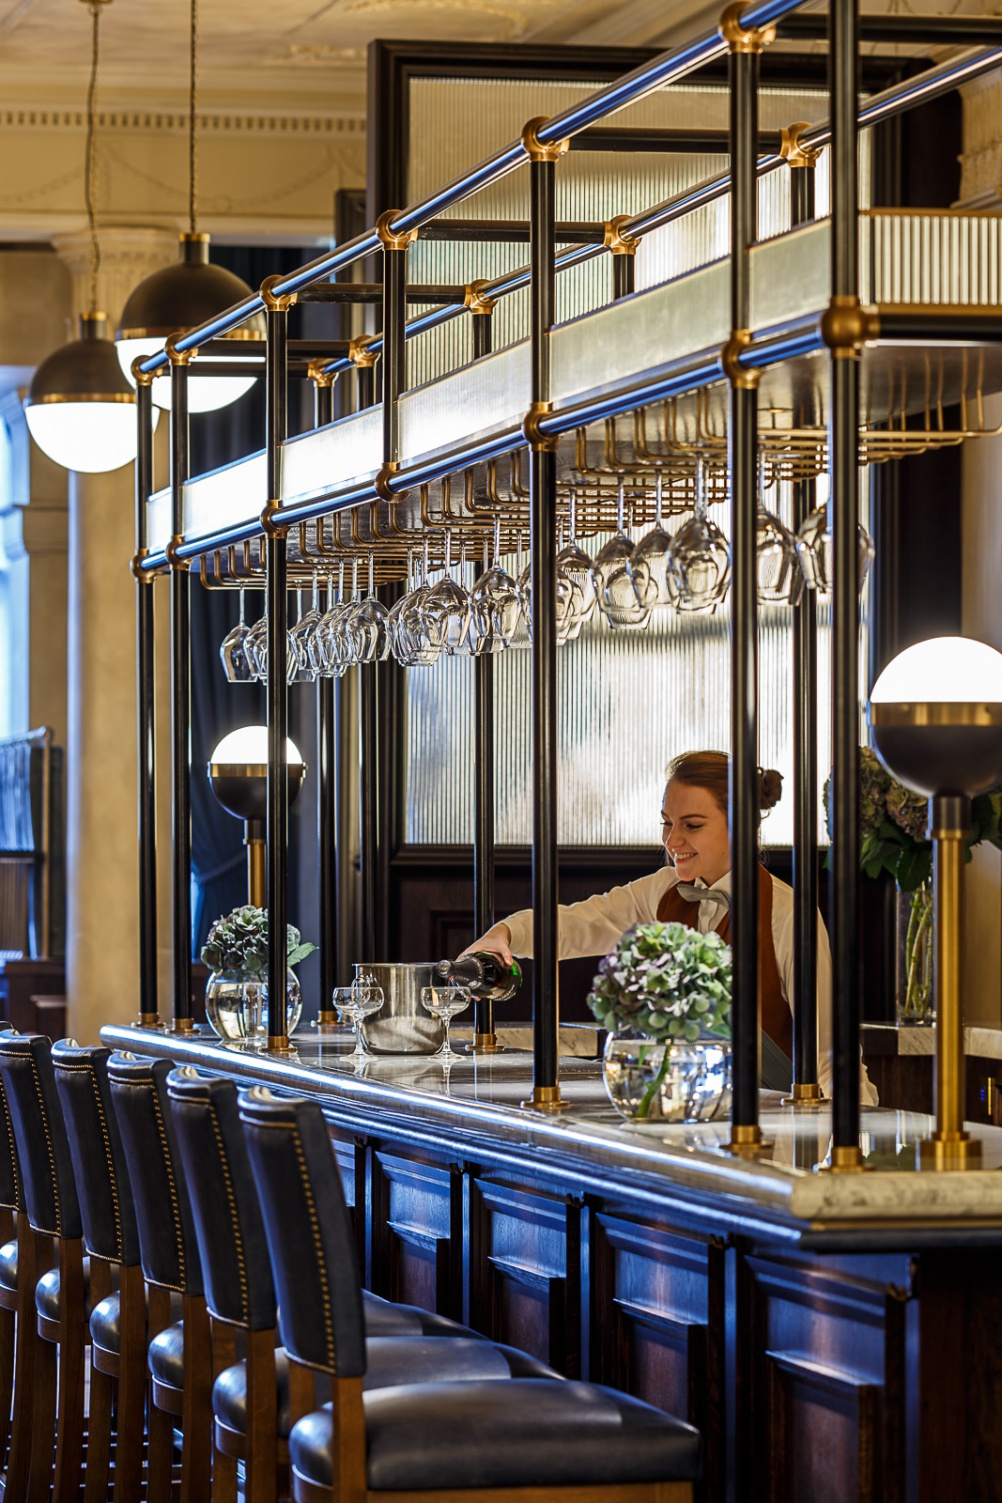 11 - The bar has bespoke black metal and brass gantries with inset lighting to set off glass and spirit displays